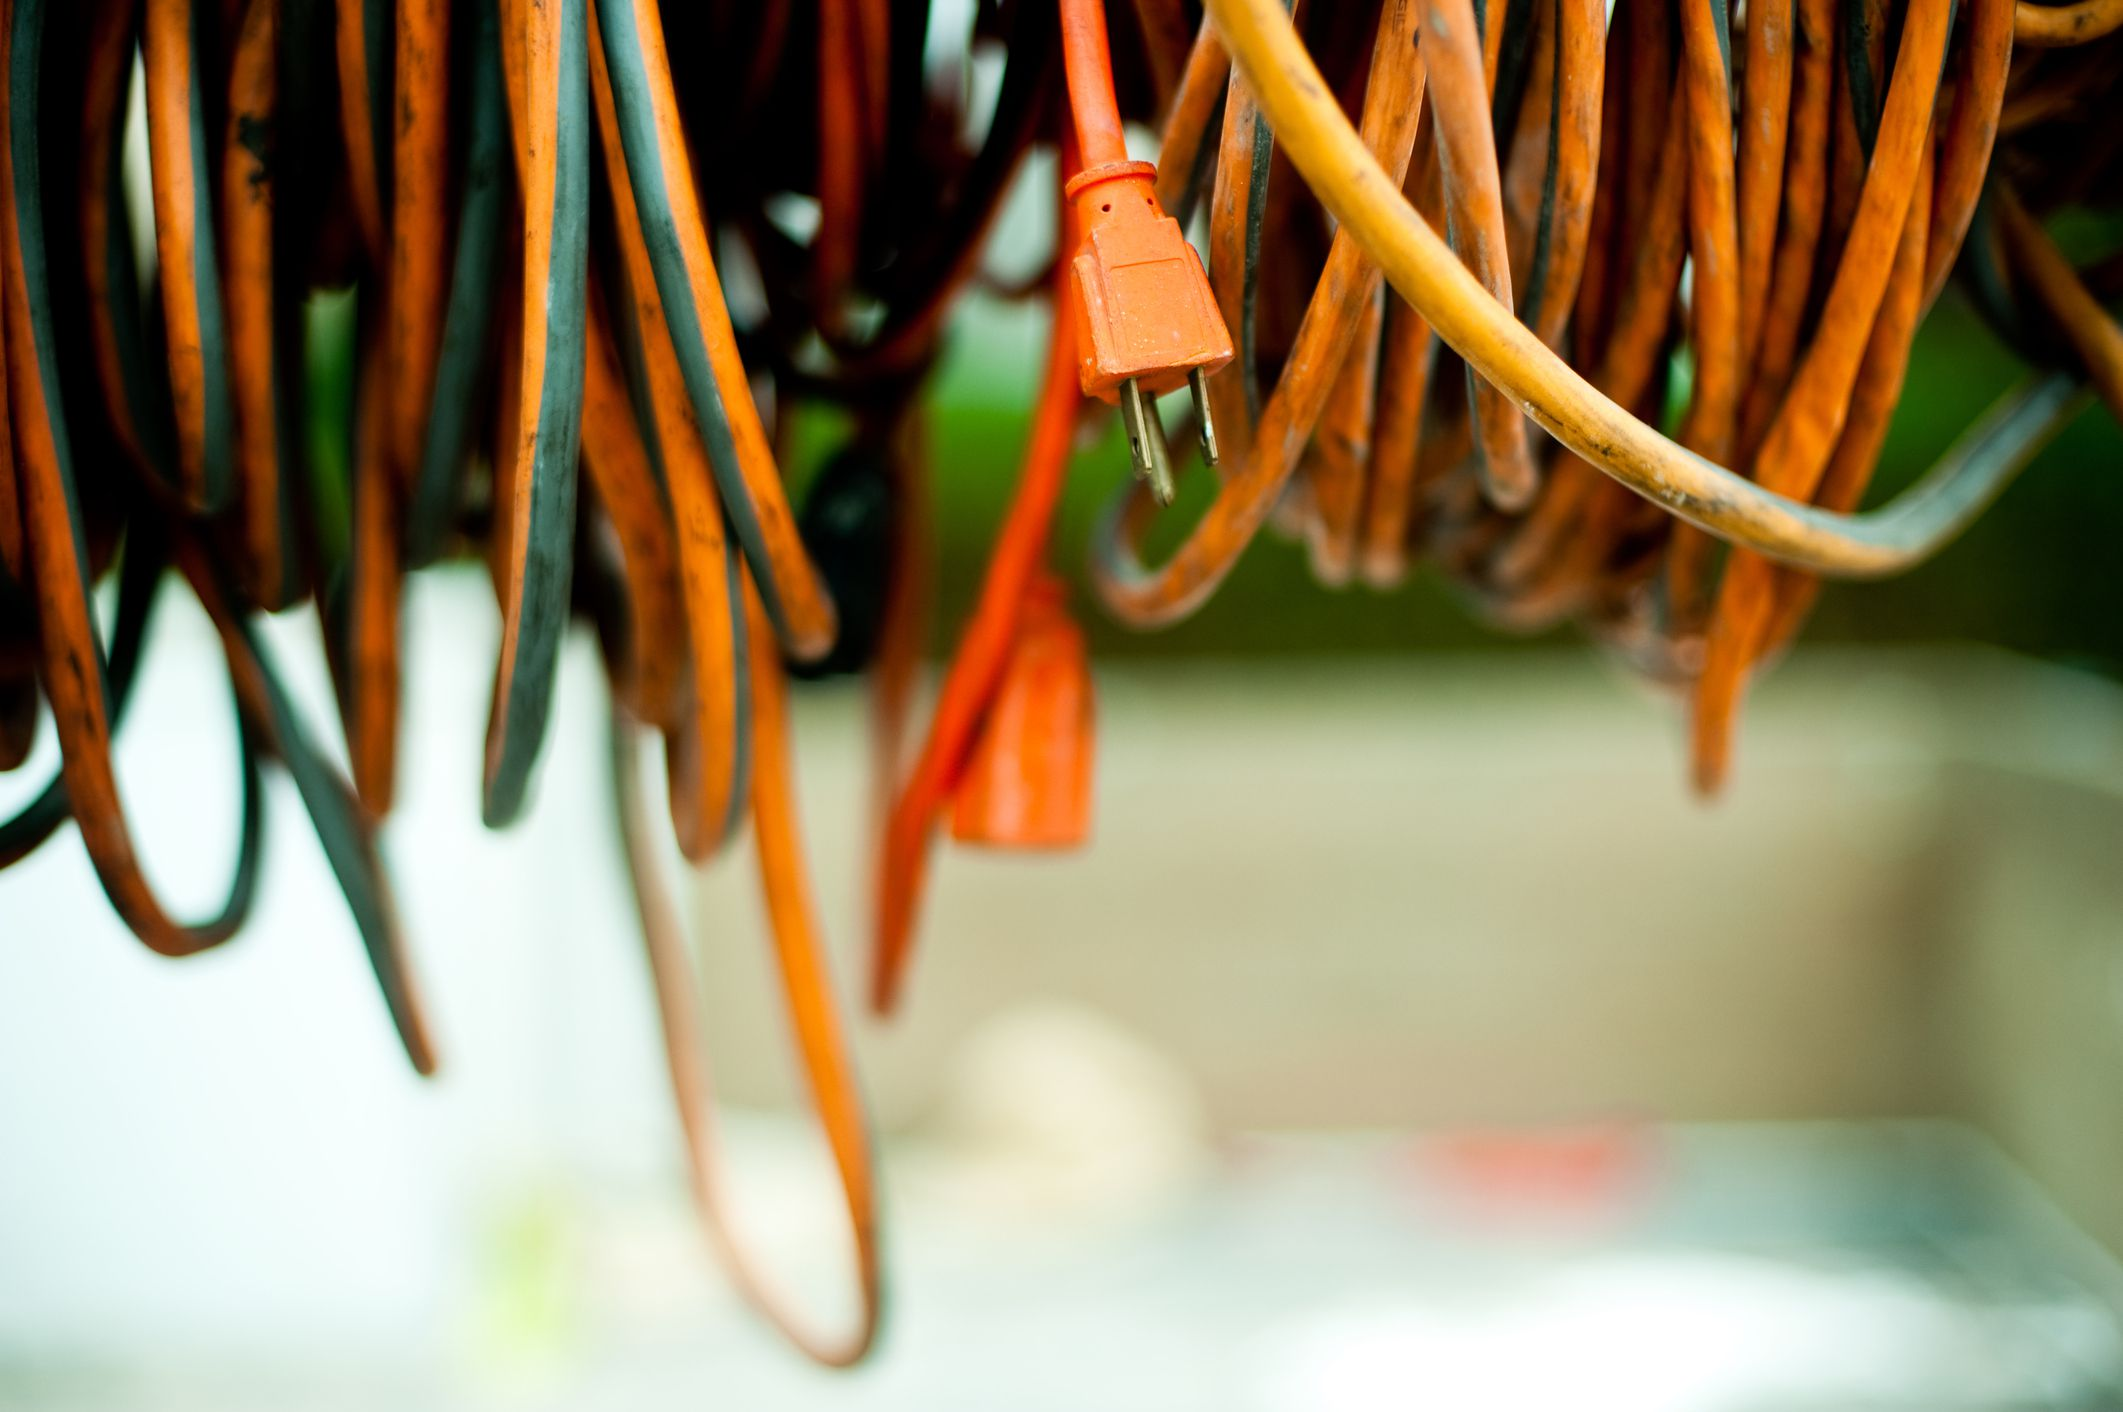 How To Replace The Plug On An Extension Cord Or Power Cord